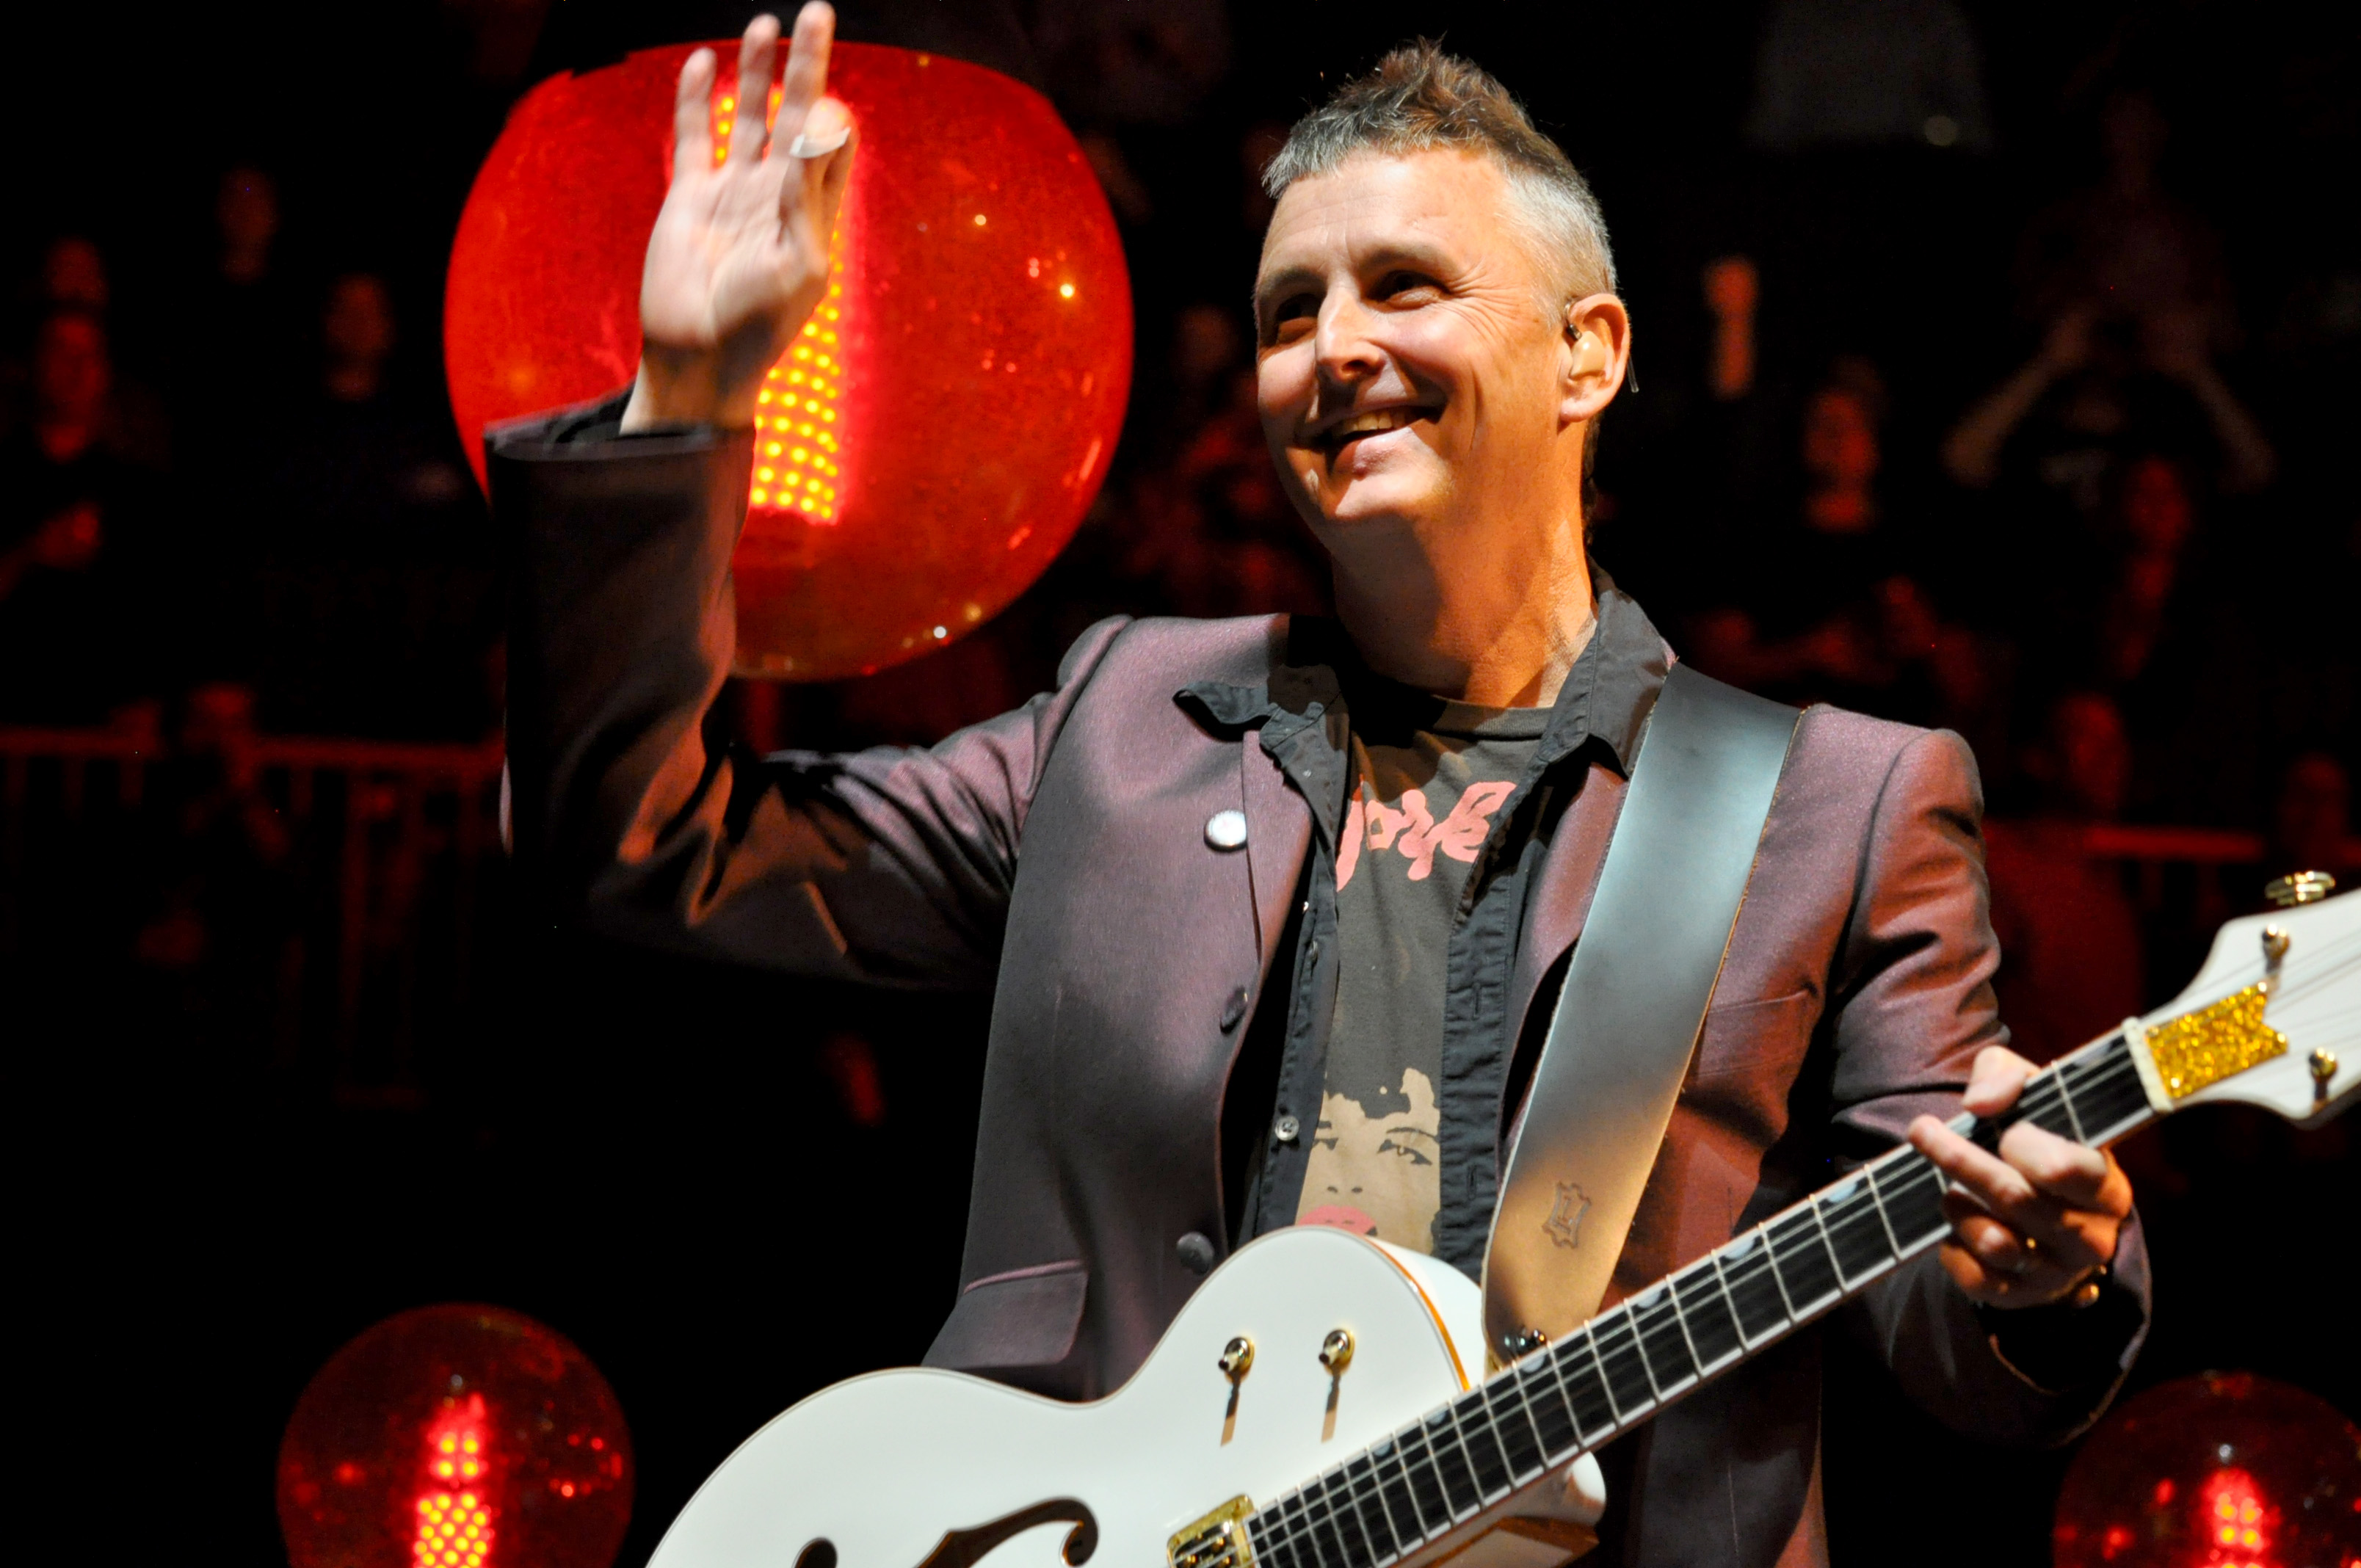 Mike McCready of Pearl Jam Announces Peak To Sky Festival Featuring Performances with Chad Smith, Duff McKagan, Taylor Hawkins, Josh Klinghoffer and Brandi Carlile